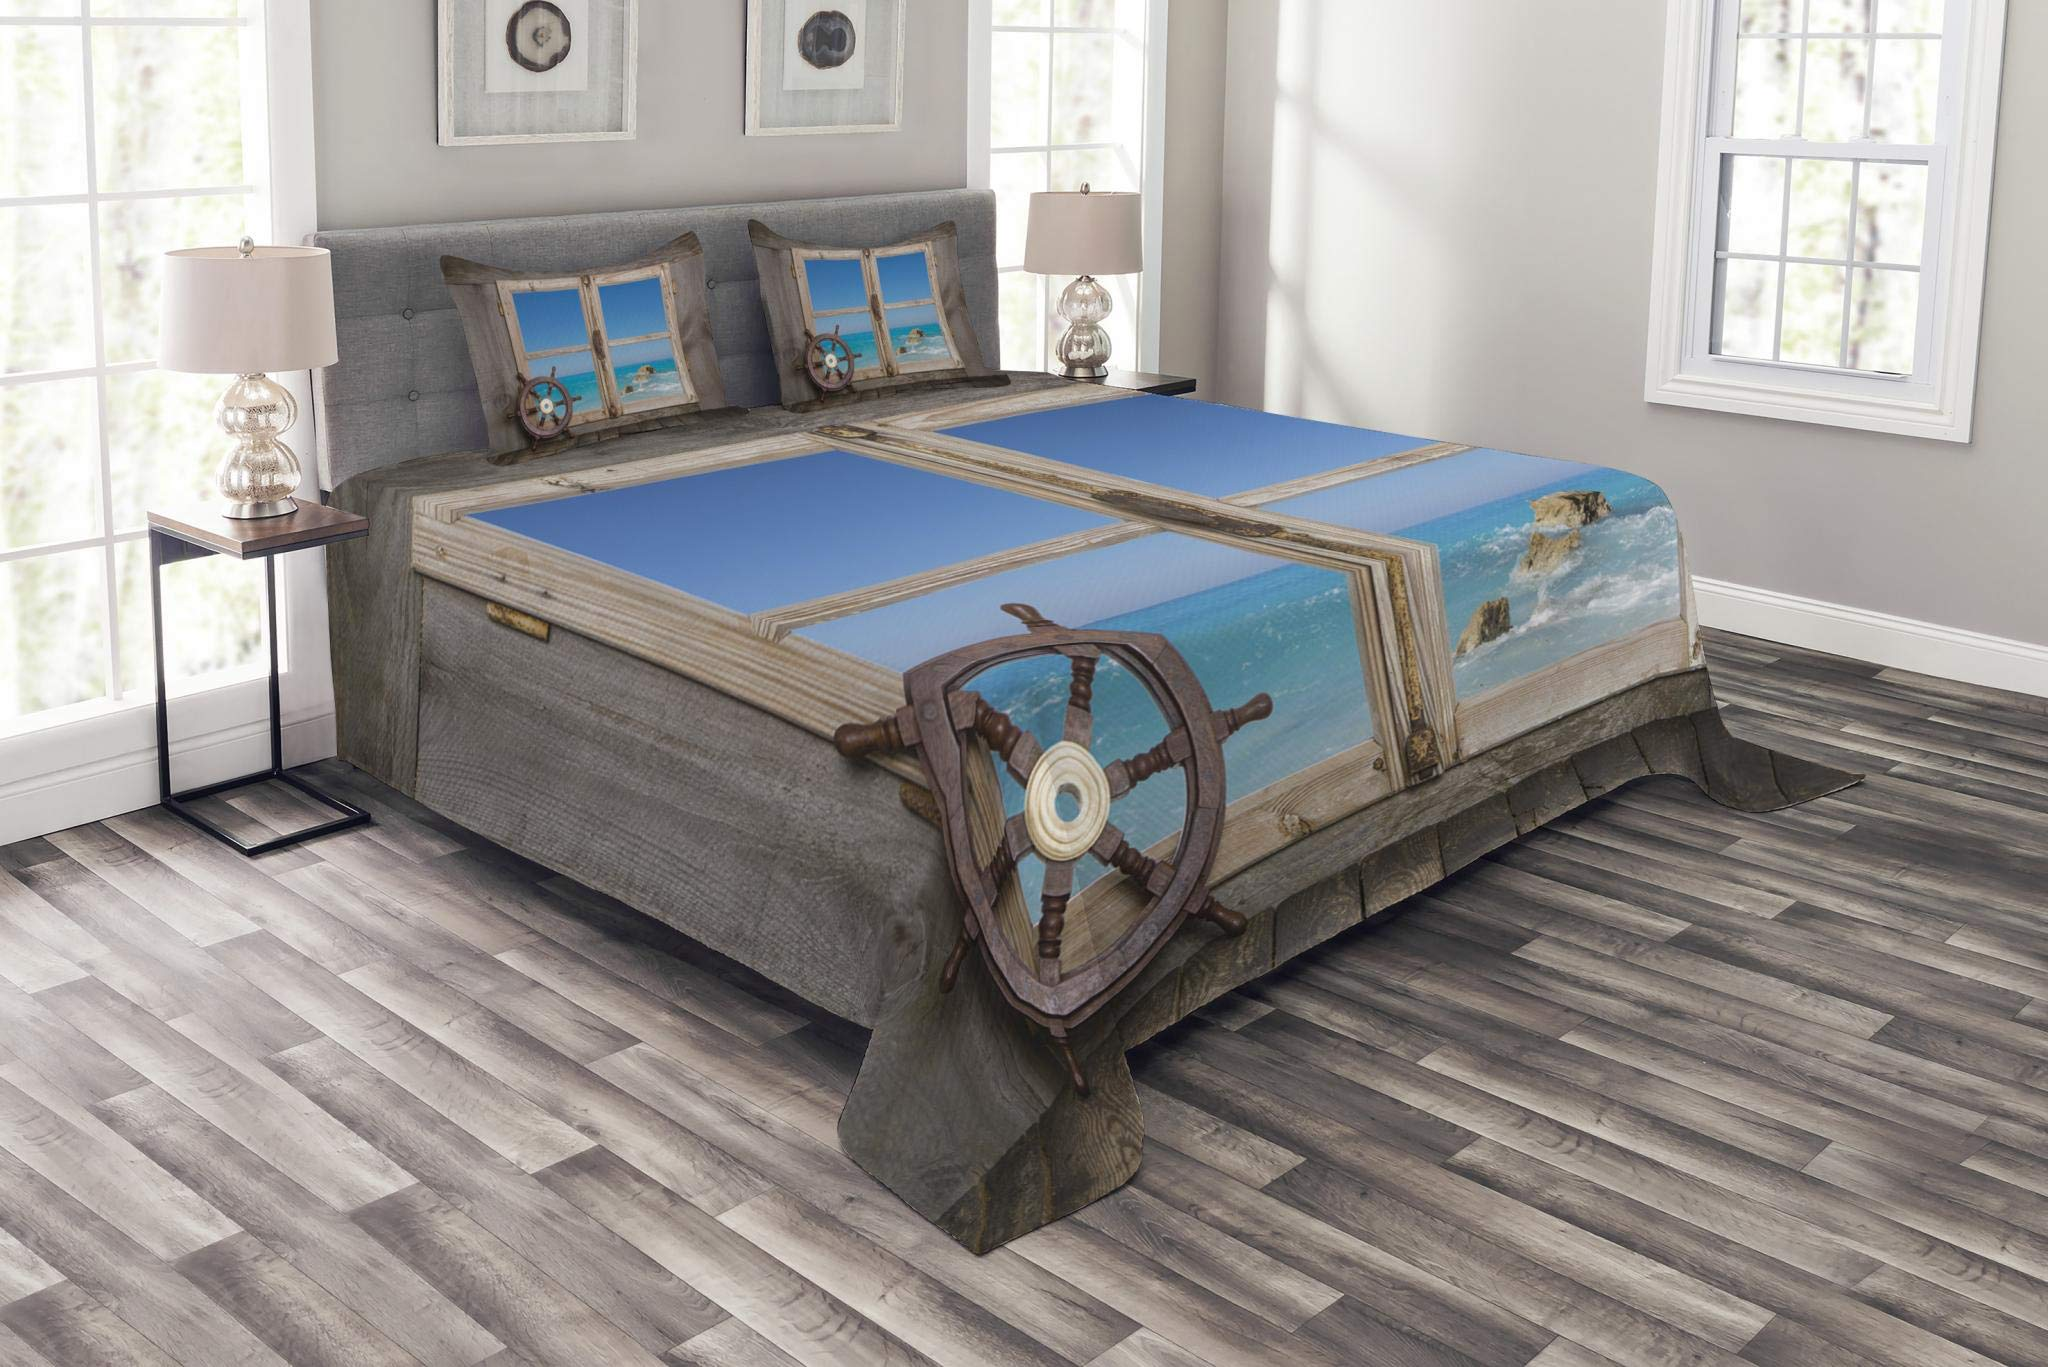 Lunarable Holiday Bedspread Set Queen Size, View Through Wooden Window with Seascape Ocean Holiday Steering Wheel Maritime, Decorative Quilted 3 Piece Coverlet Set with 2 Pillow Shams, Taupe Blue